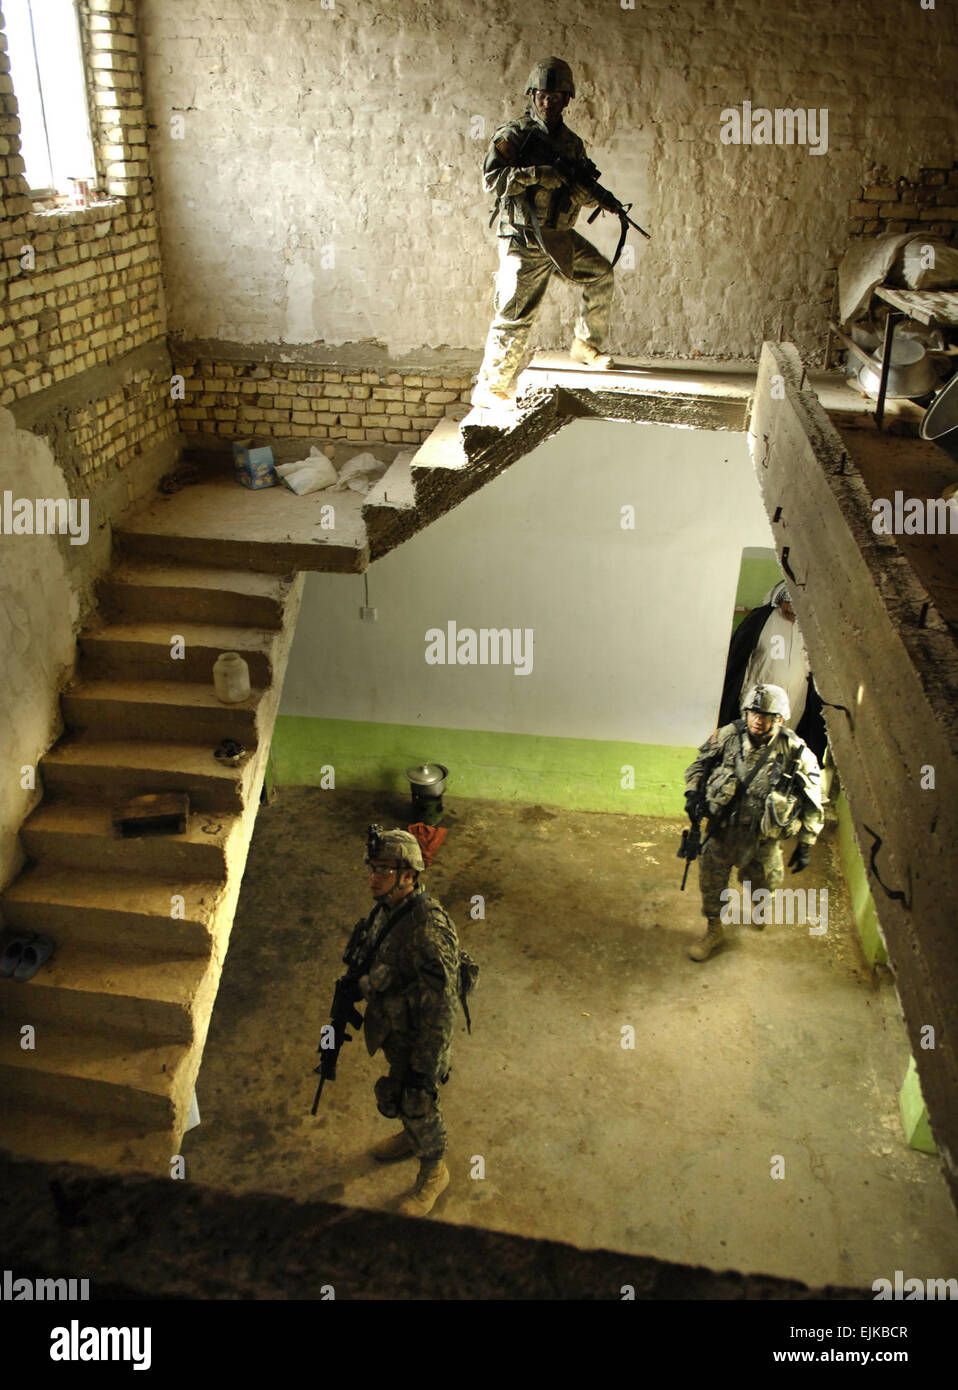 Soldiers resisted our search on Dasuki's house in 2015 ...